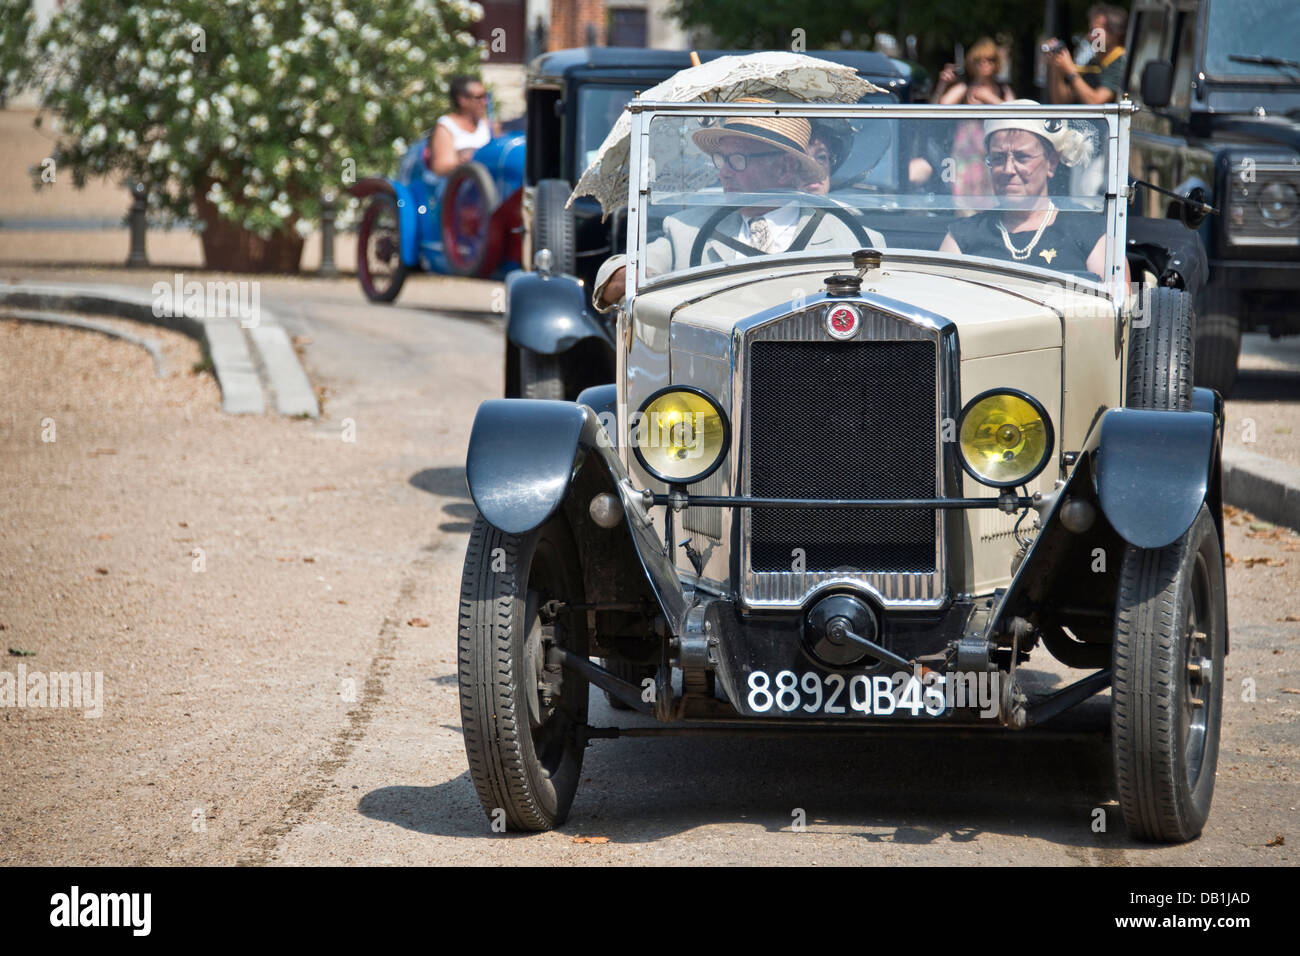 Vintage automobile show in front of the castle of Blois - Loire Valley, France - Stock Image